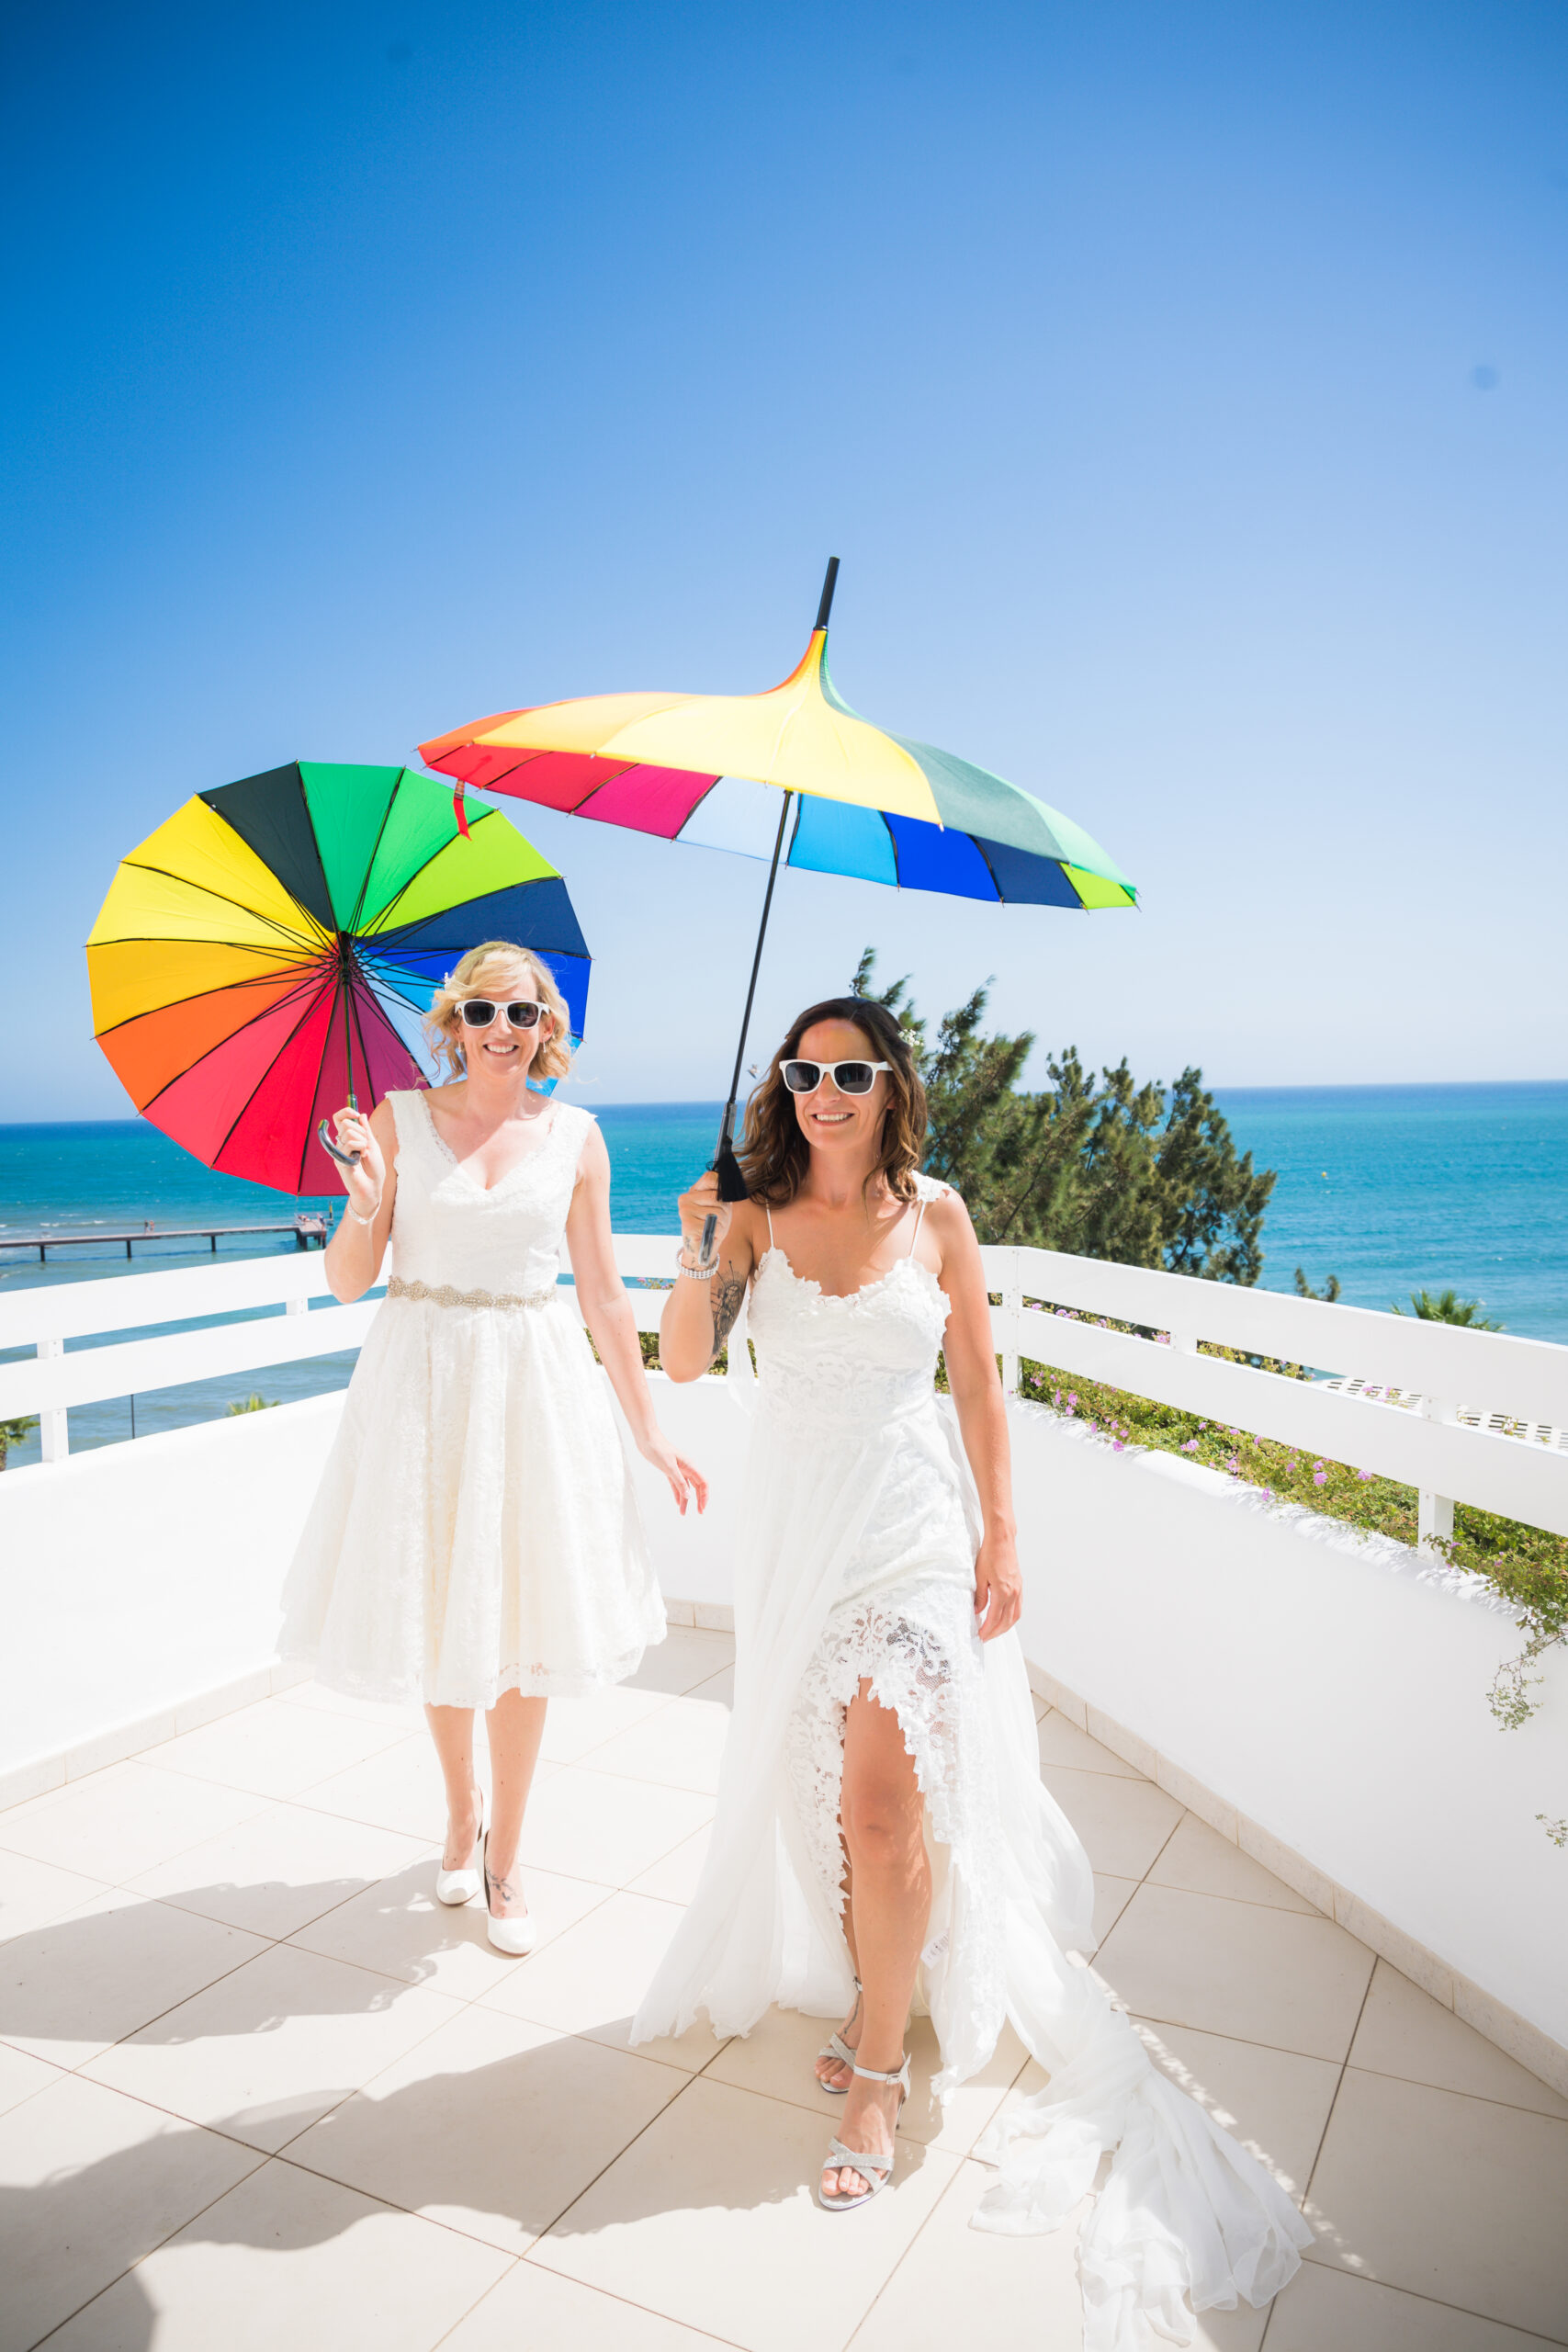 The happy couple in shades under rainbow parasols next to the Mediterranean Sea - Rebecca Davidson Photography